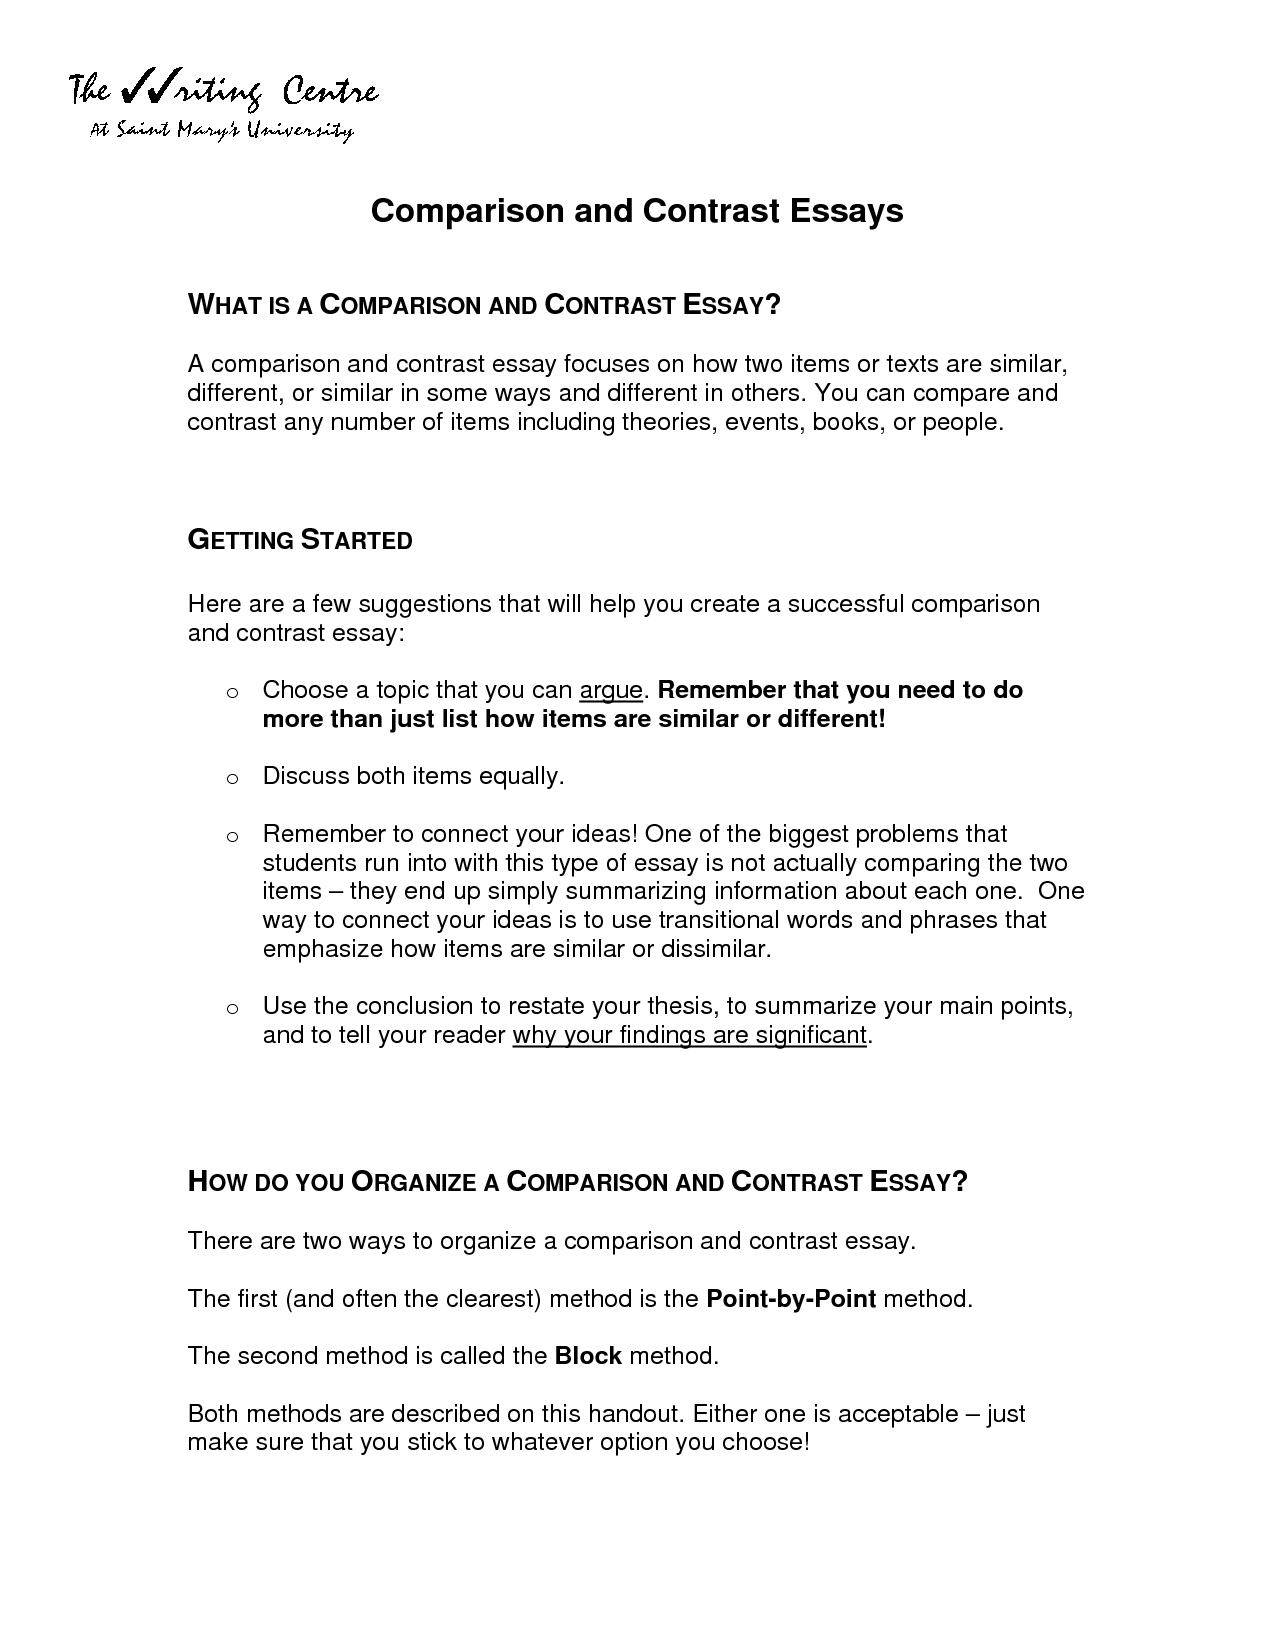 Essay On Greenhouse Effect Compare Contrast Essay Outline Example Comparisoncontrast Essay Outline A  Contrast Of X And Y I Introduction Include A Hook And Thesis Statement  Leisure Time Essay also Essays On Economy Compare Contrast Essay Outline Example Comparisoncontrast Essay  My Favourite Teacher Essay